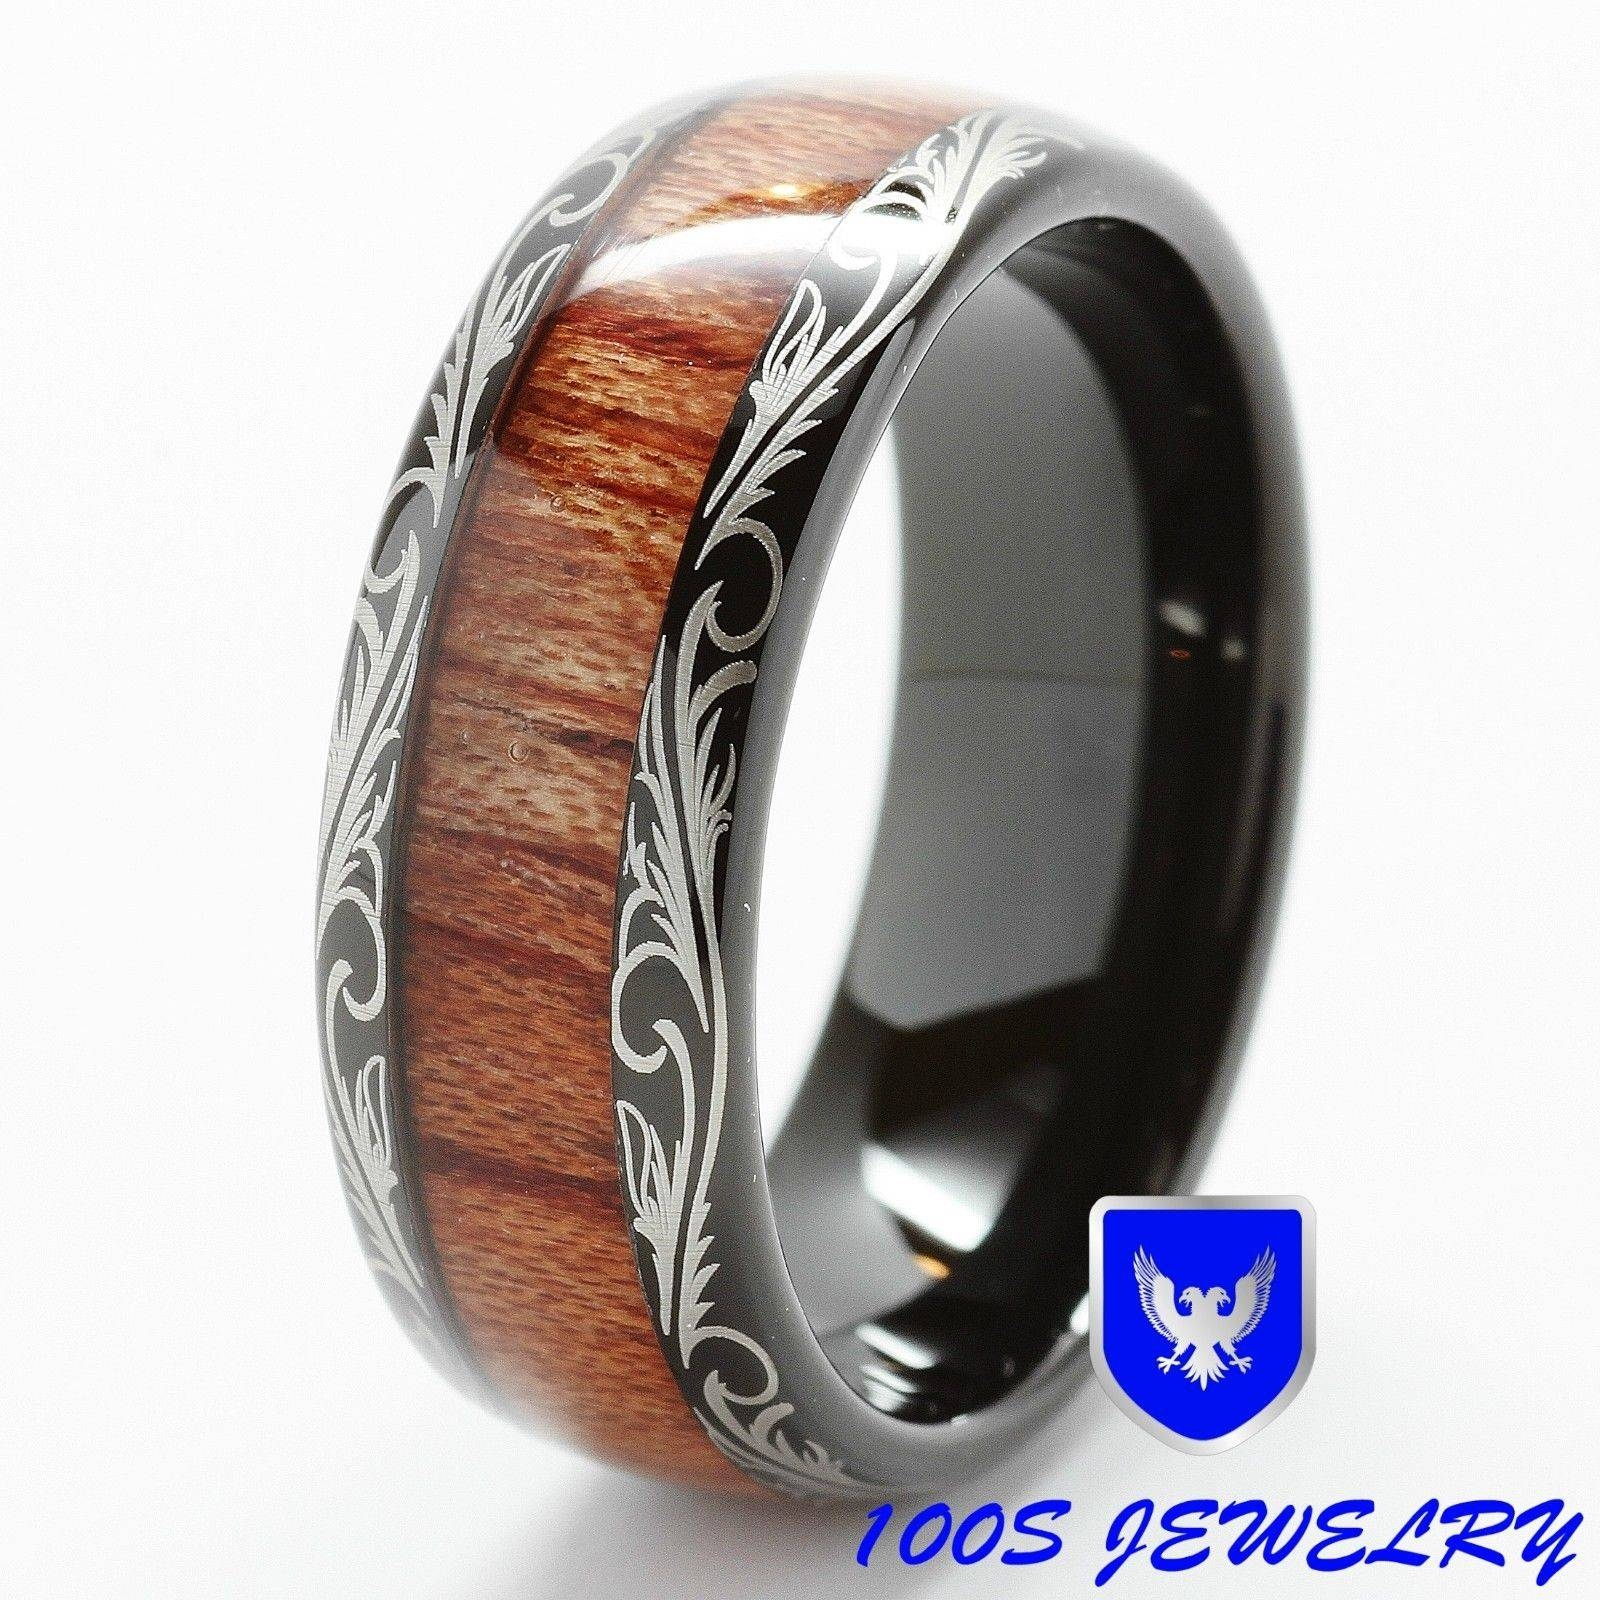 Mens Women Wedding Band Black Tungsten Ring Koa Wood Inlay Comfort With Men's Wedding Bands Size  (View 6 of 15)